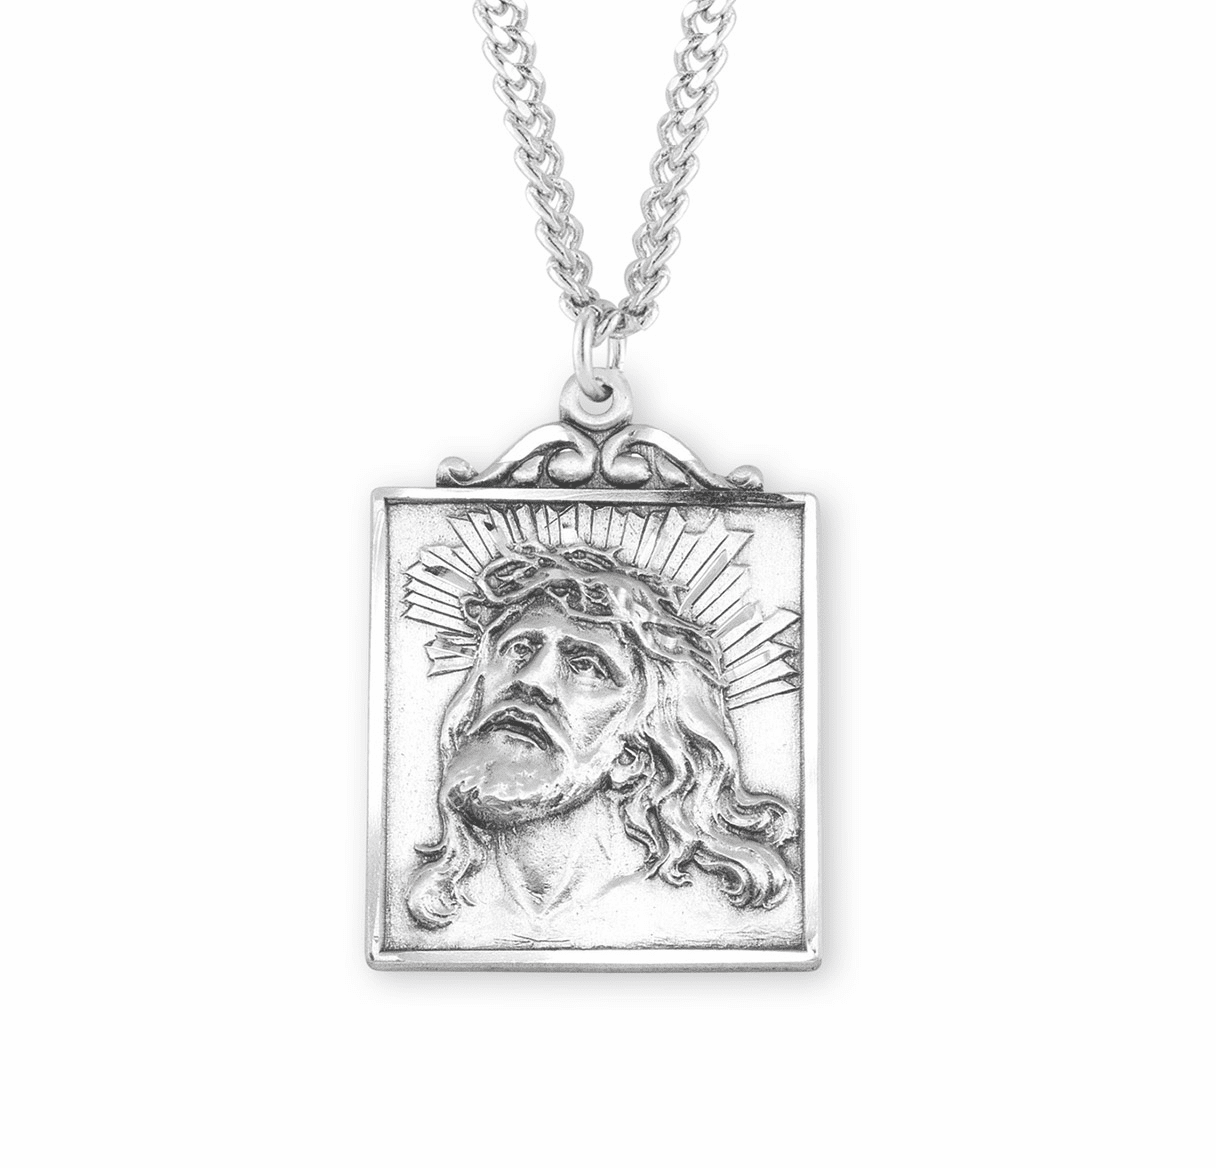 Portrait of Jesus w/Crown of Thorns Sterling Necklace by HMH Religious